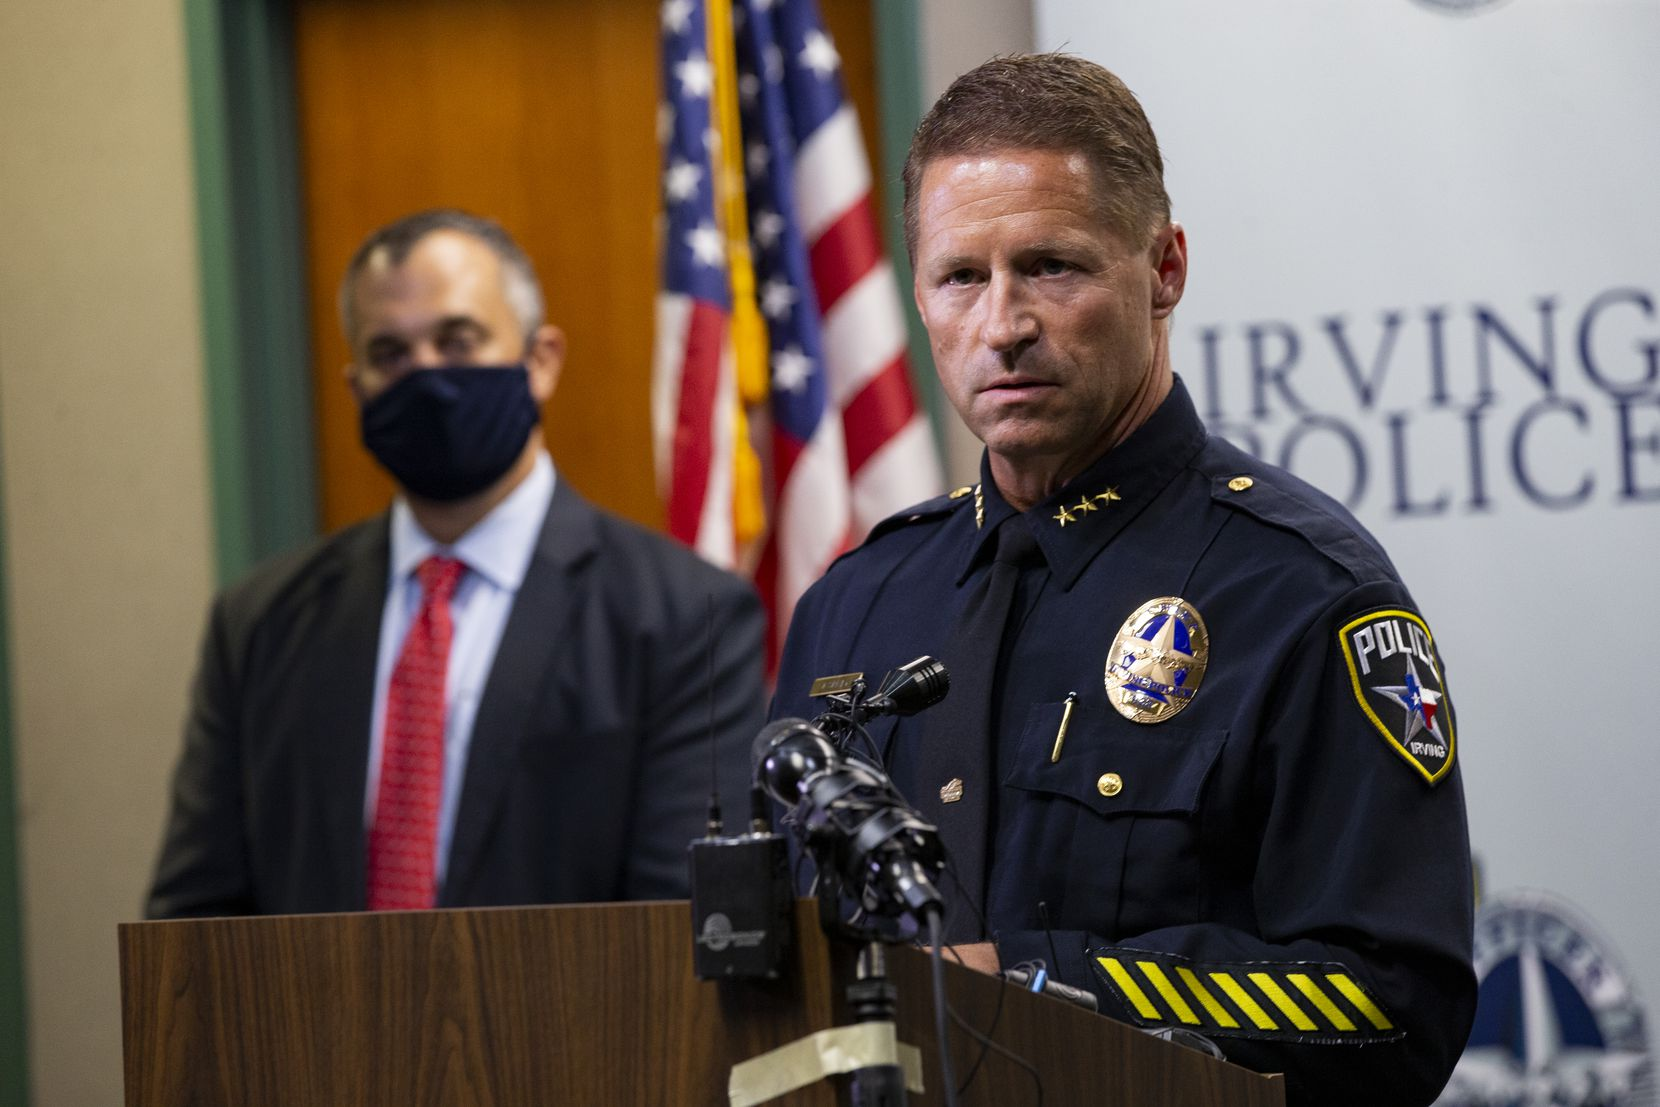 Irving police Chief Jeff Spivey discussed the capture of Yaser Abdel Said at a news conference with the Federal Bureau of Investigation and the United States Attorney's Office on Aug. 26 in Irving.